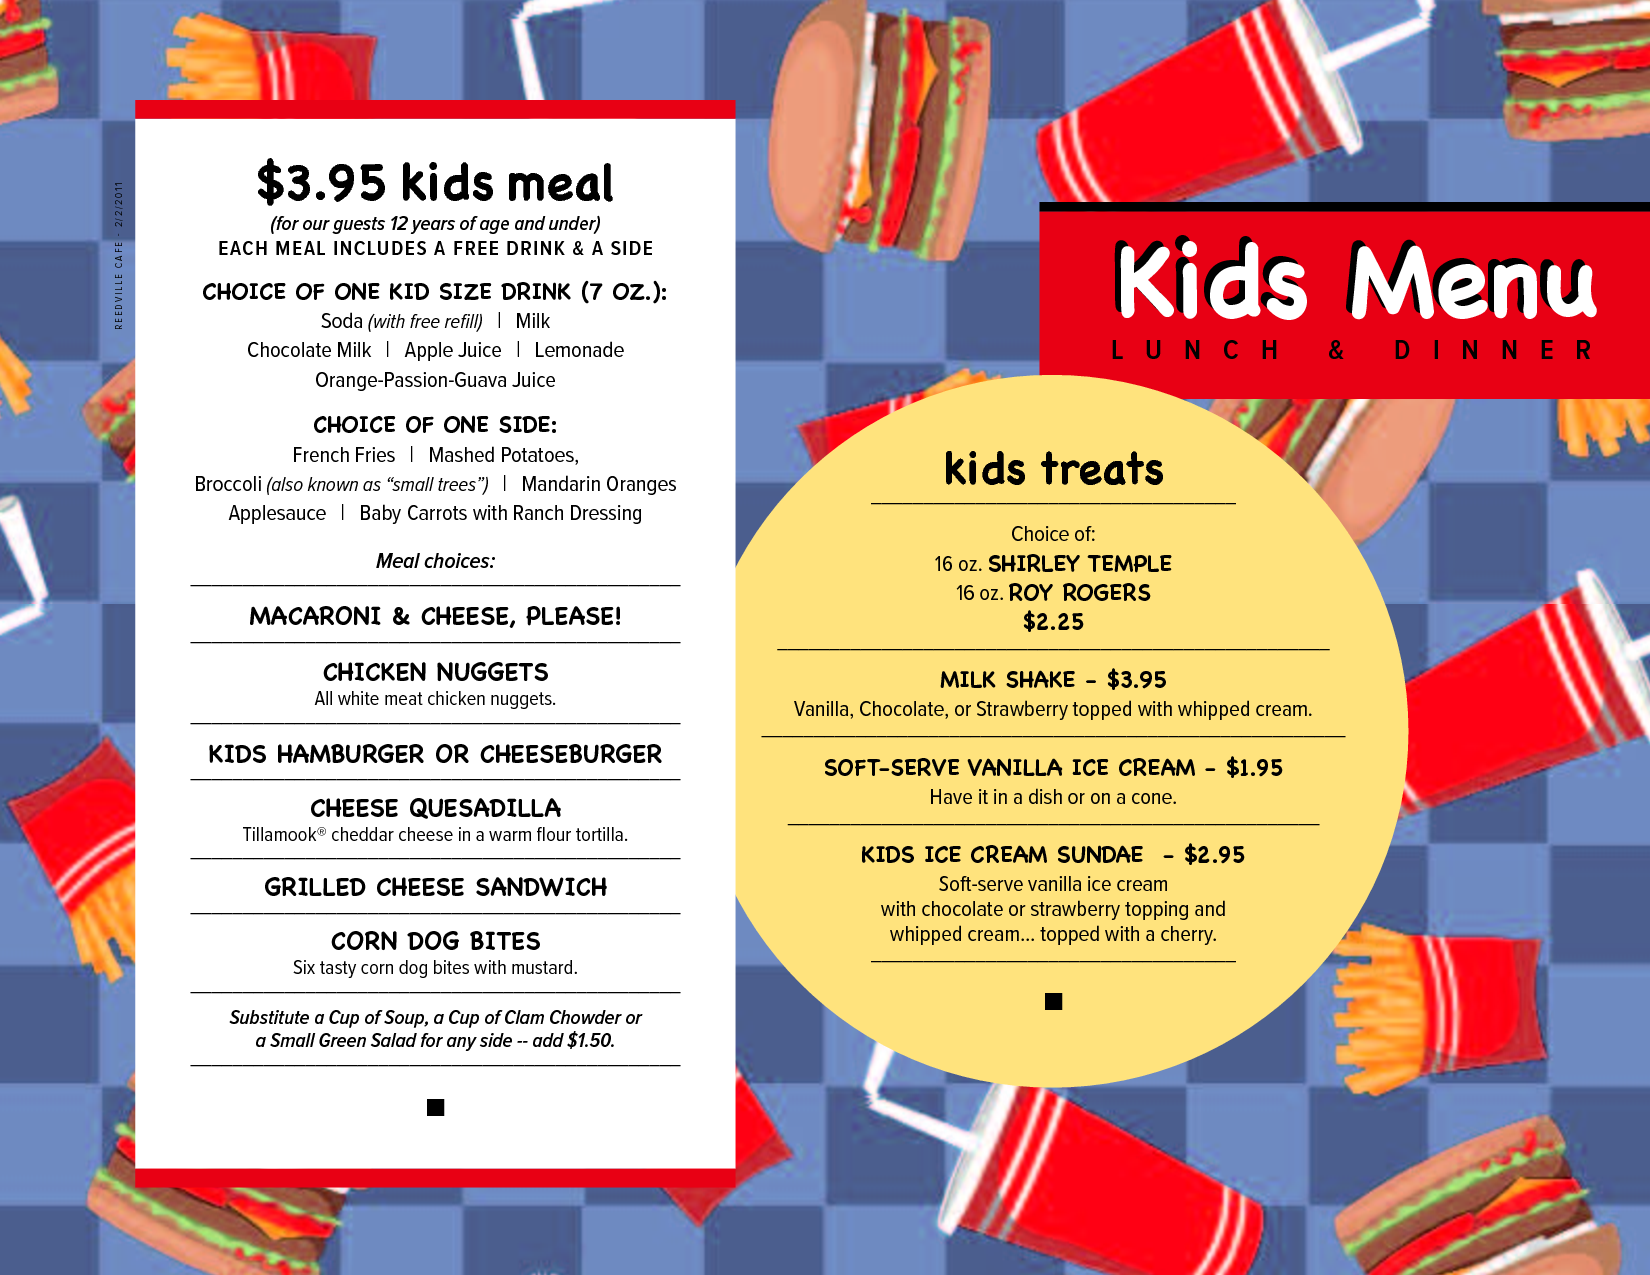 free restaurant menu templates for mac - free menu templates kids menu kids menu menu ideas